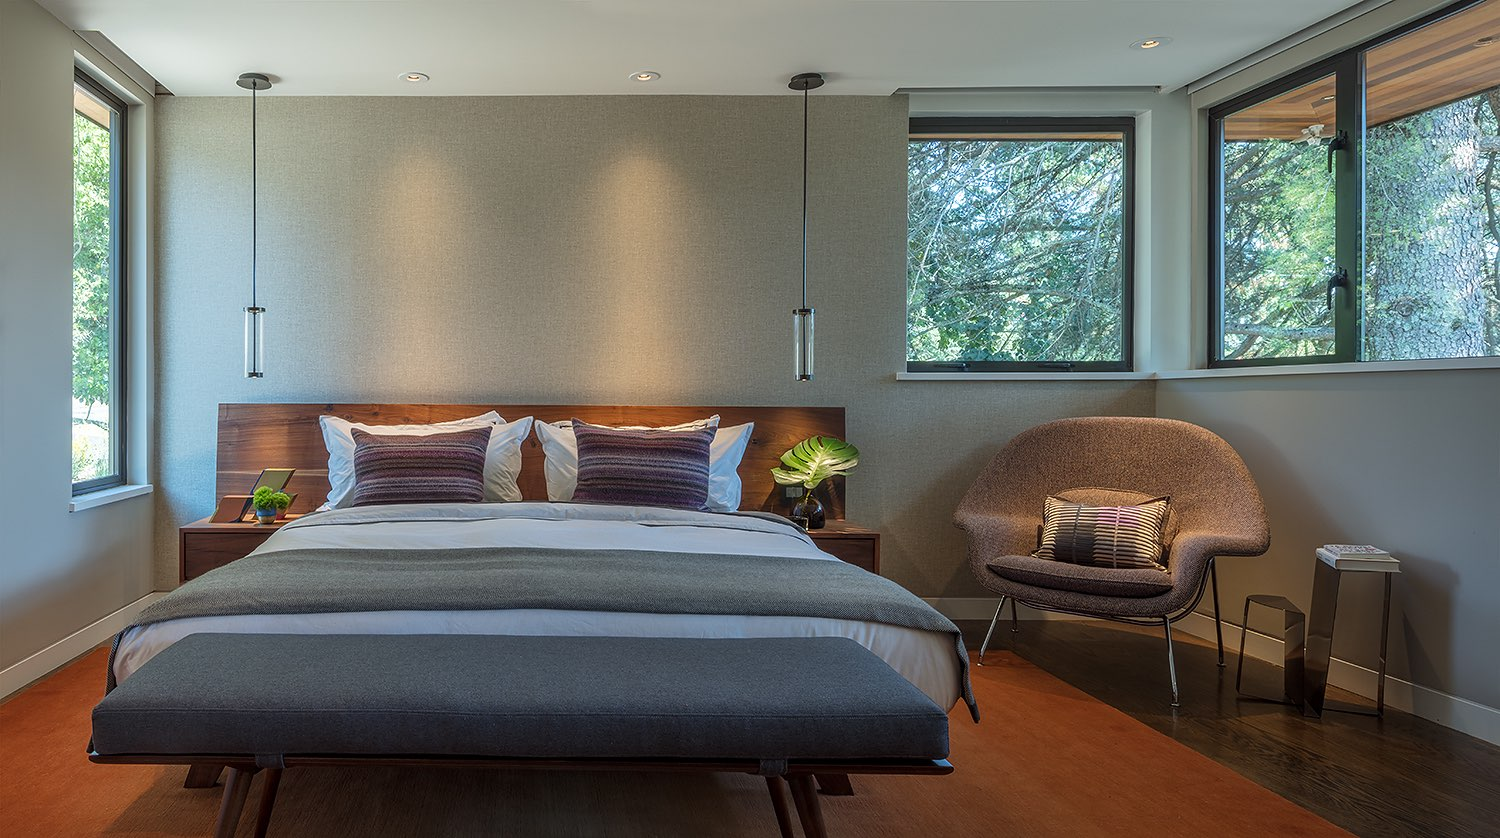 Interior Design Master Bedroom Skyline Drive Oakland, by LMB Interiors